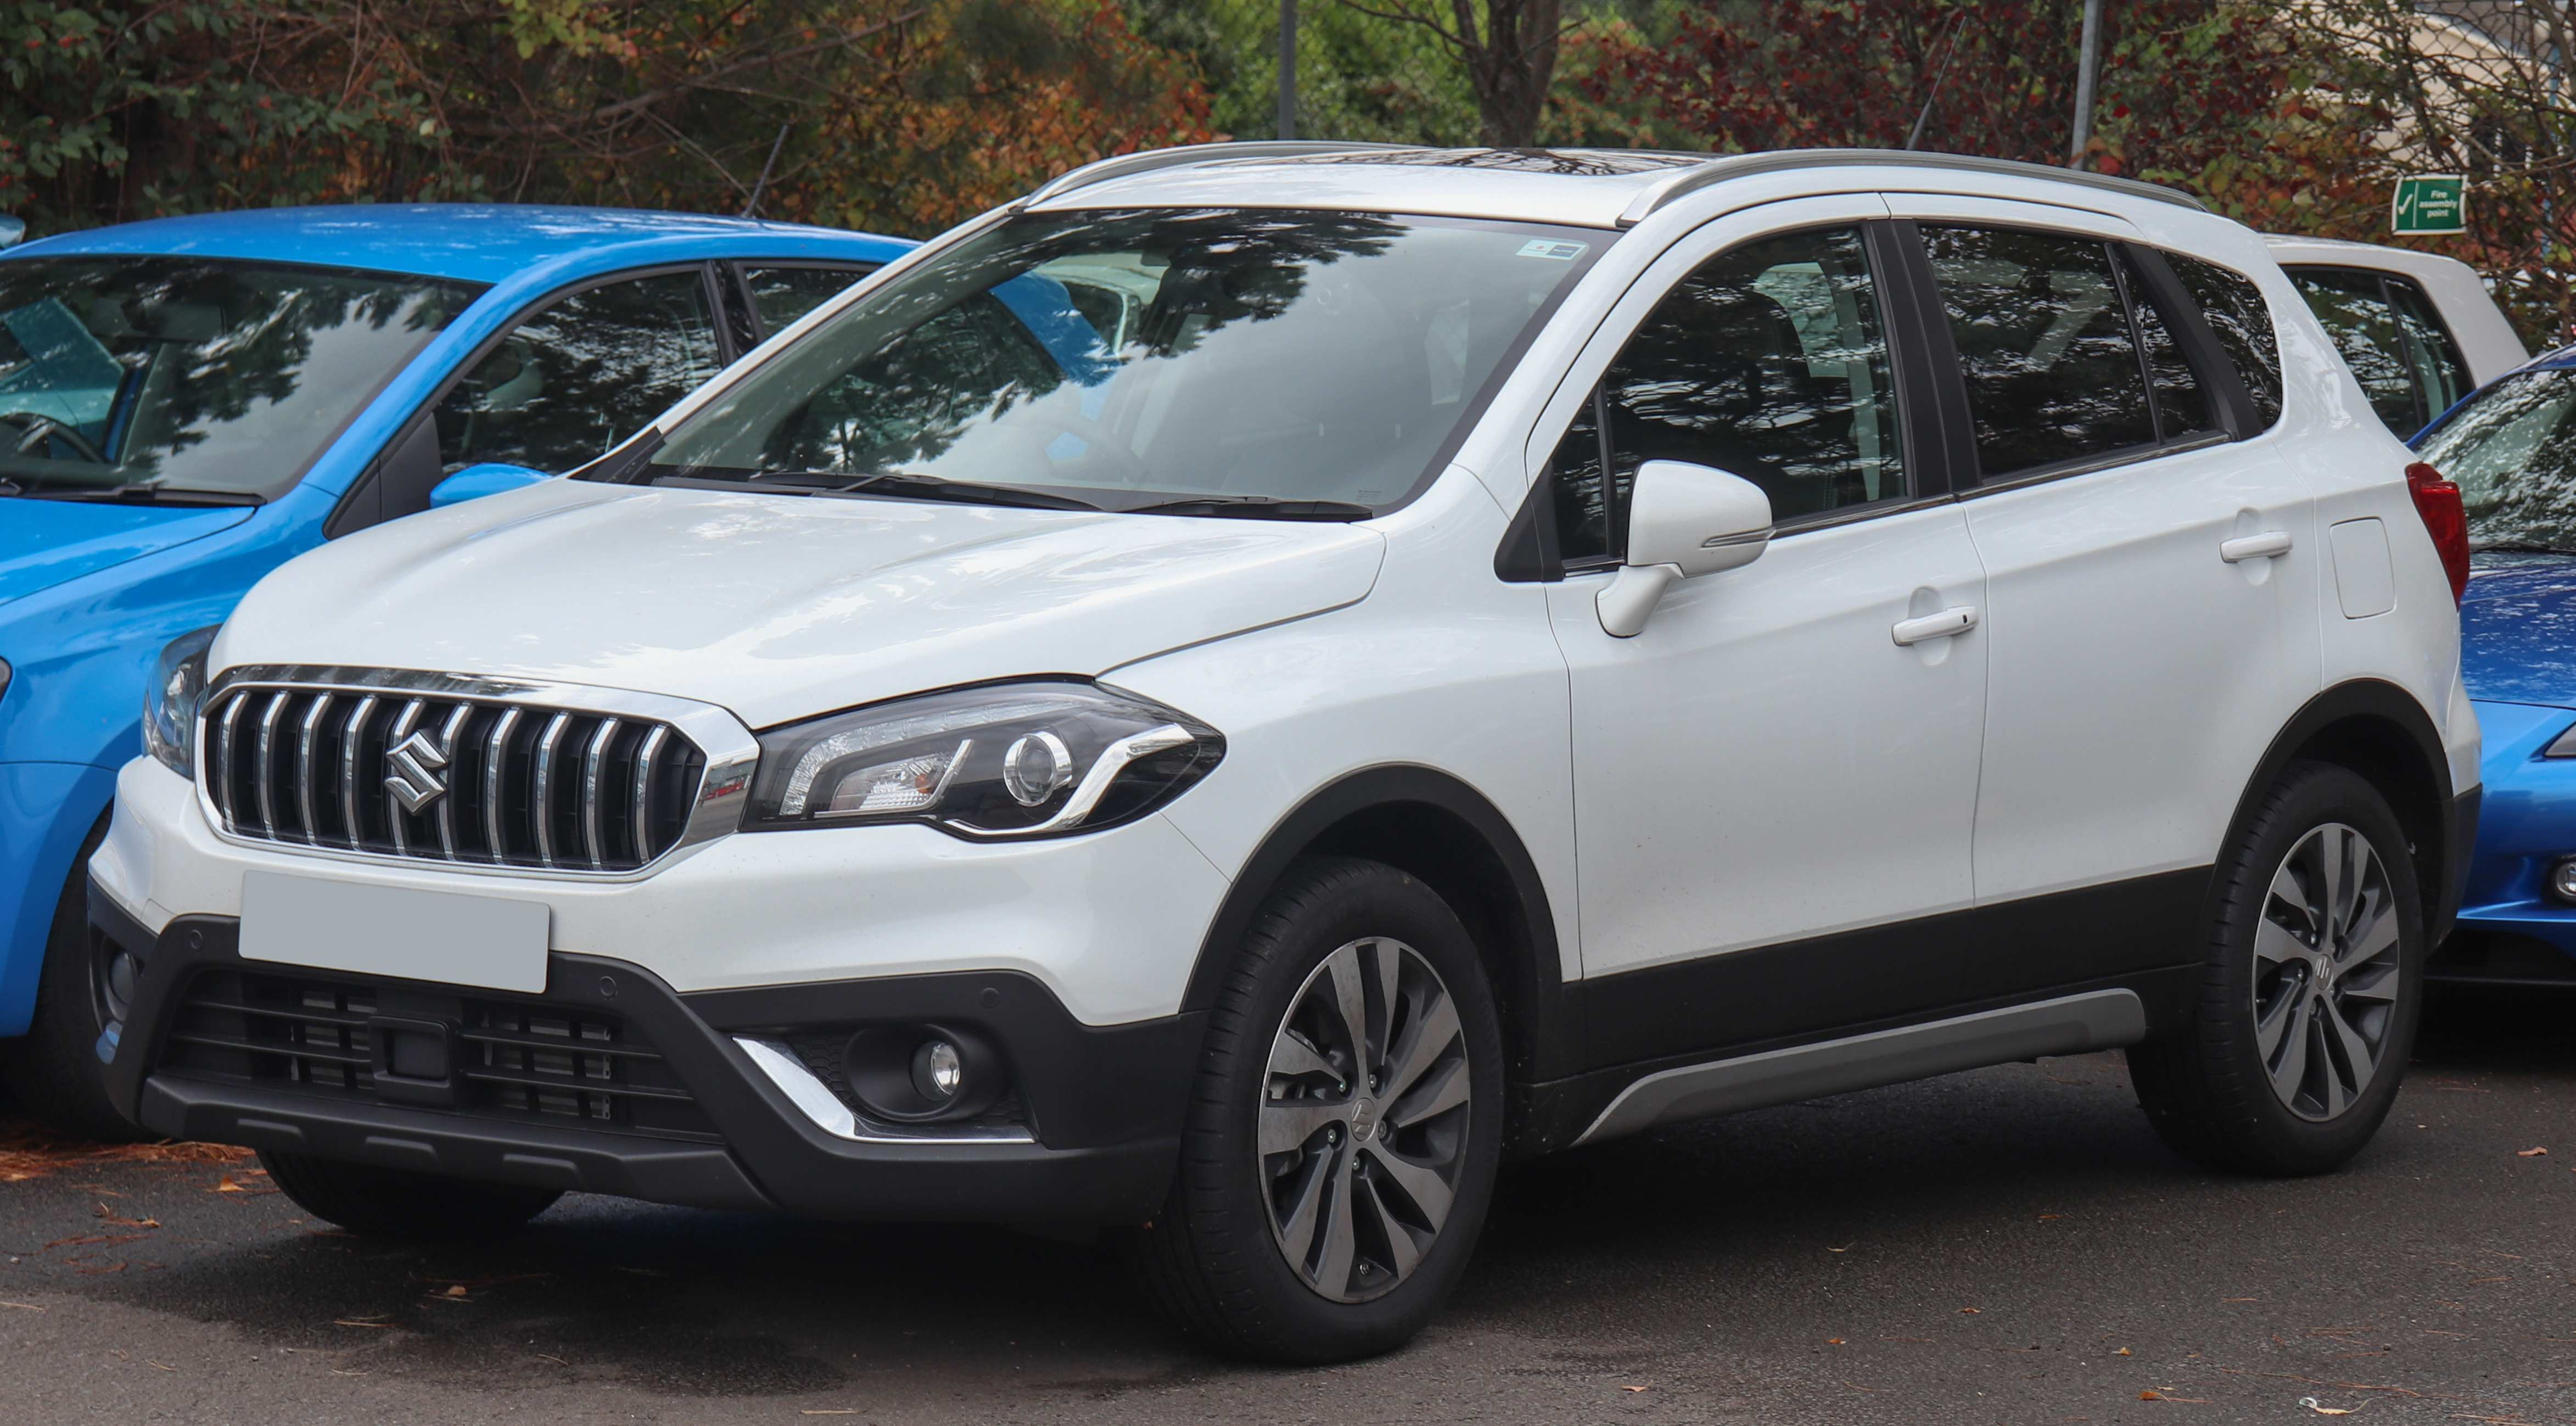 59 The Best 2019 Suzuki Sx4 Release Date And Concept